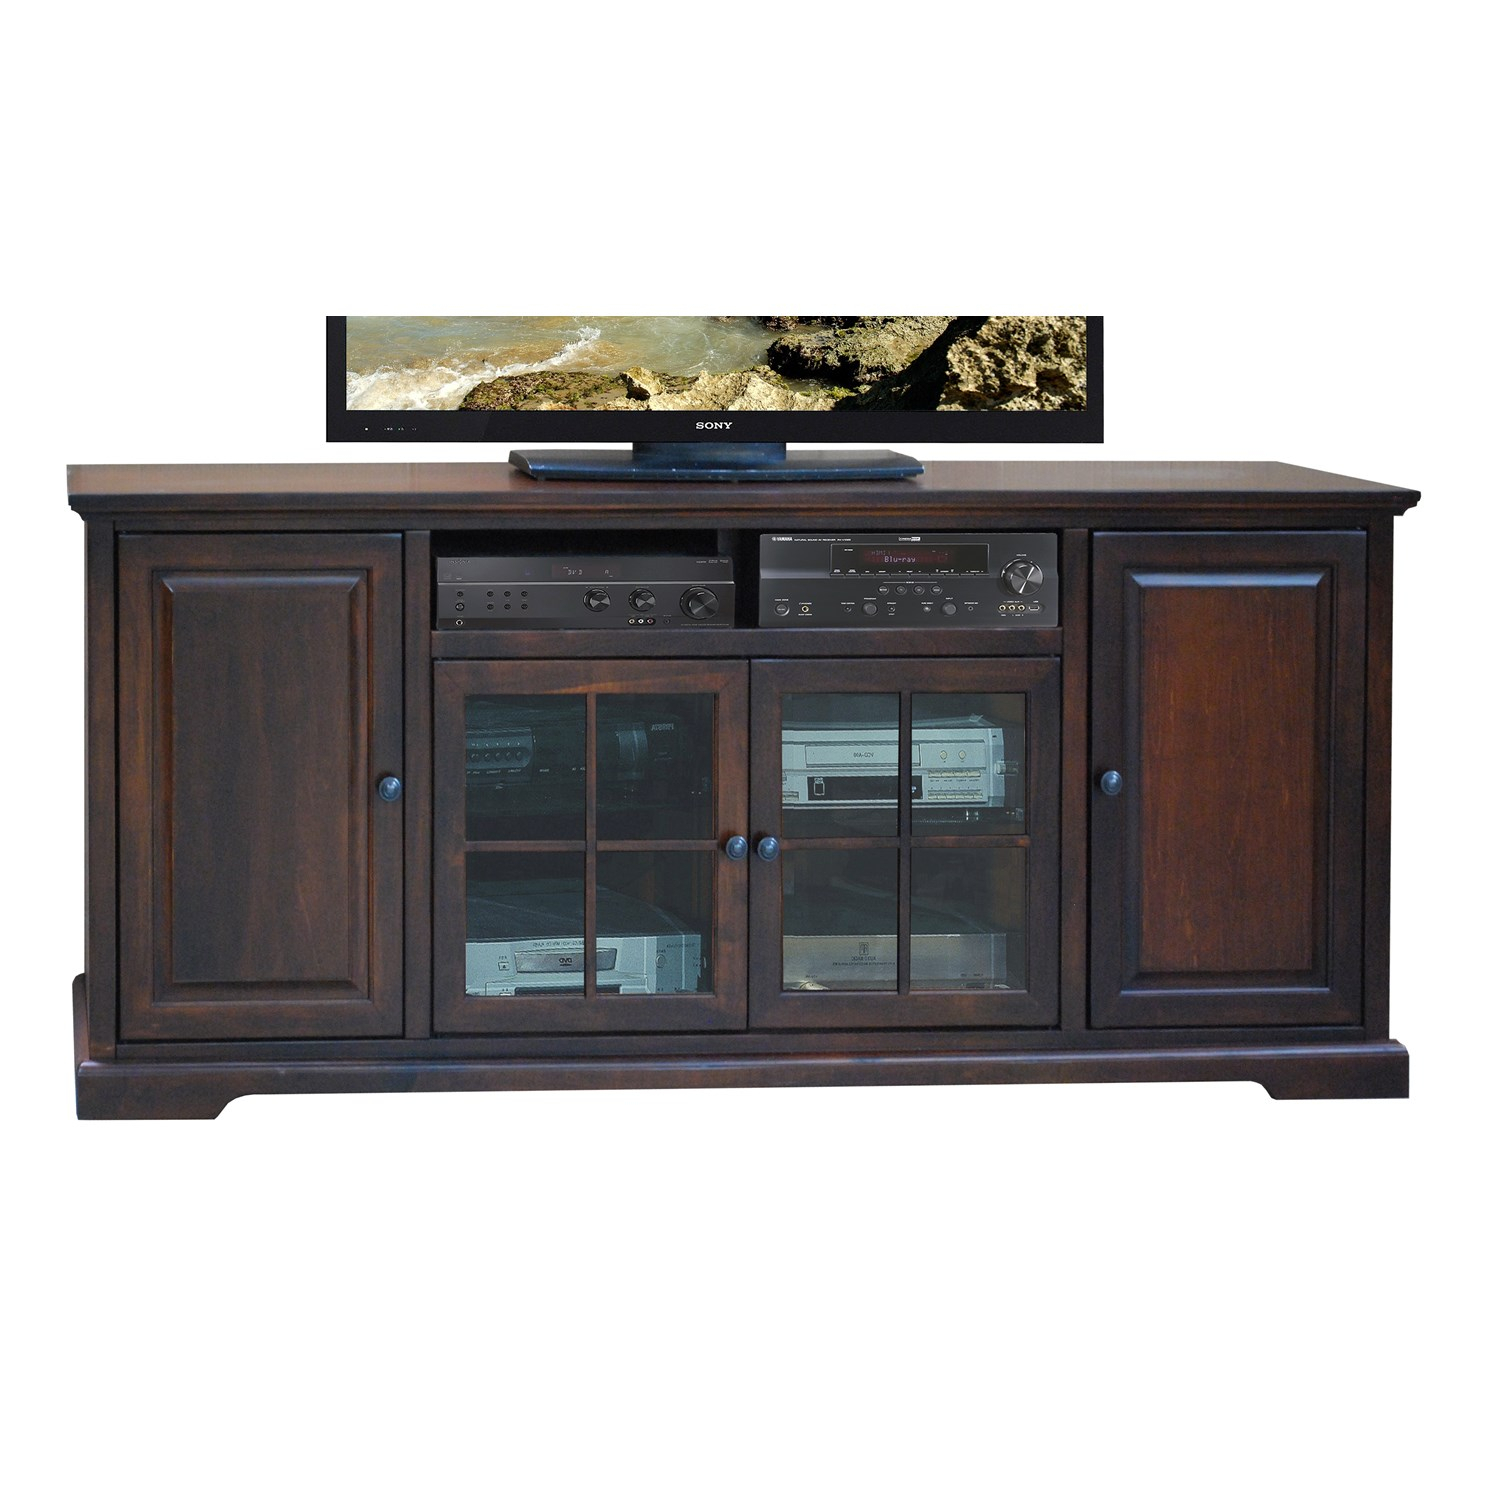 "78 Tv Stand.city Furniture: Axel White 78"" Tv Stand. City Furniture with regard to Jacen 78 Inch Tv Stands (Image 10 of 30)"